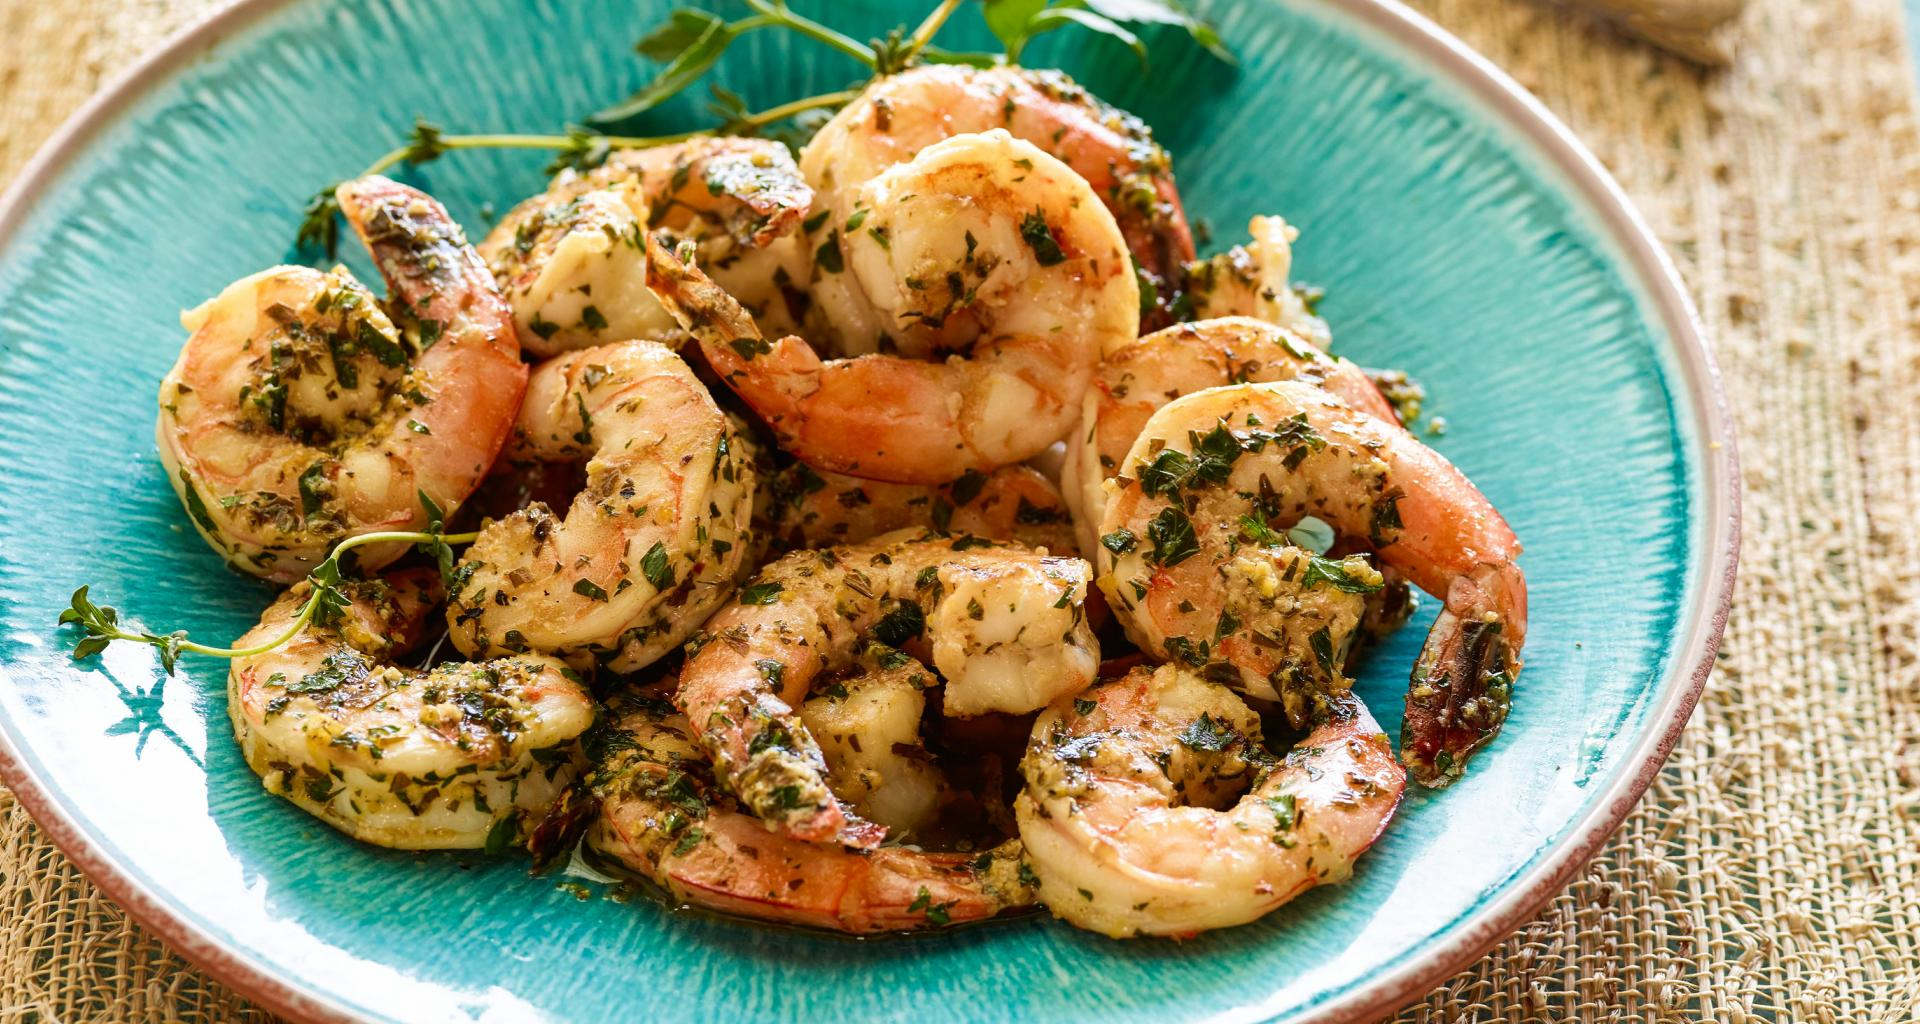 Spiced Smoked Shrimp